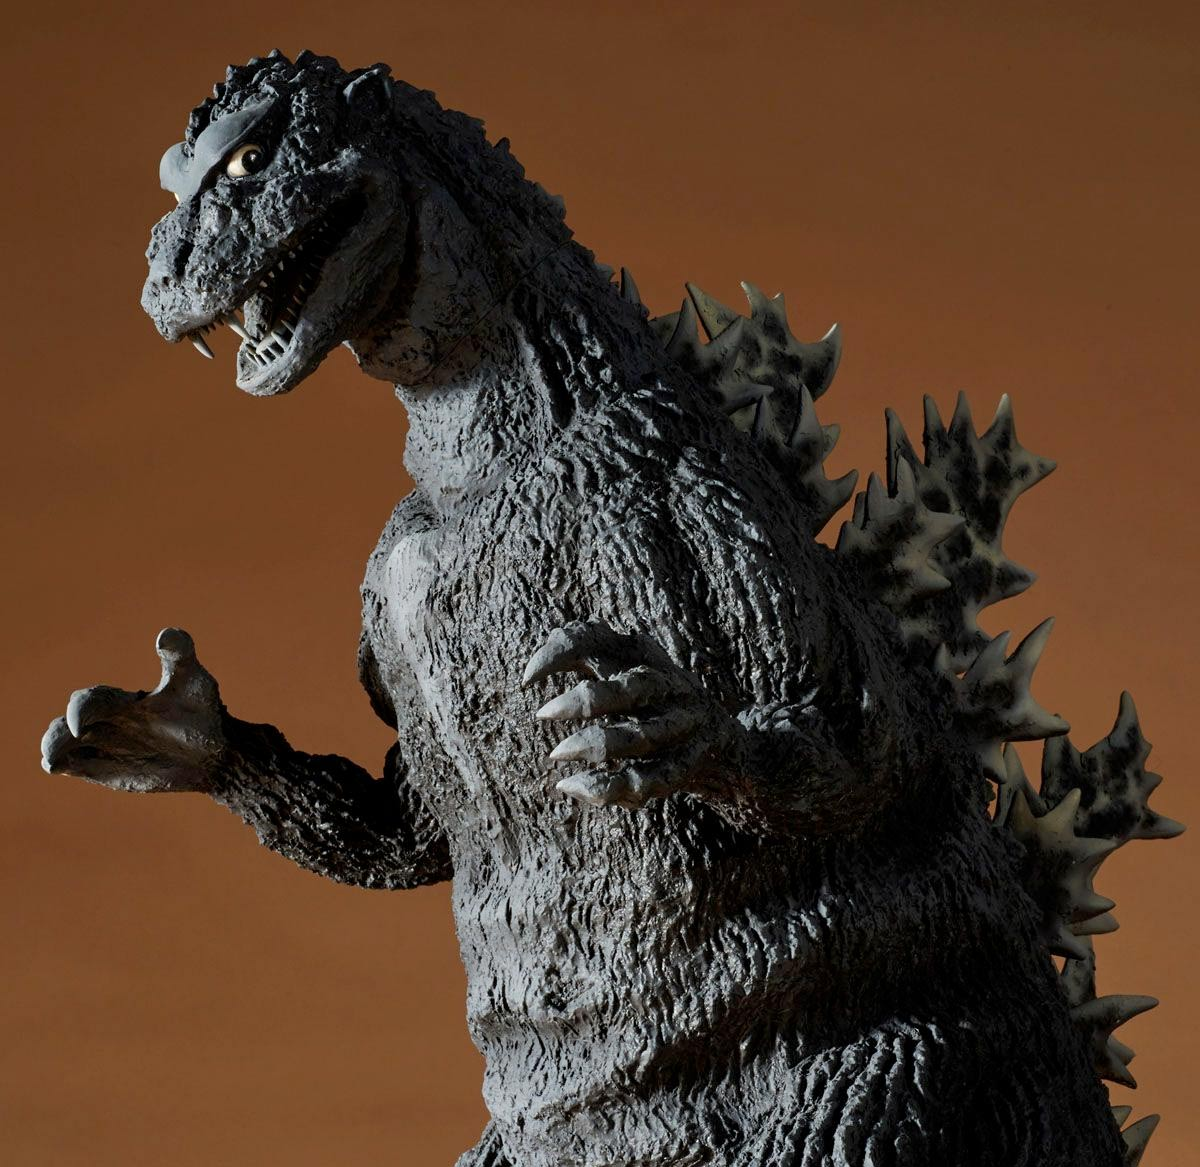 godzilla - photo #20